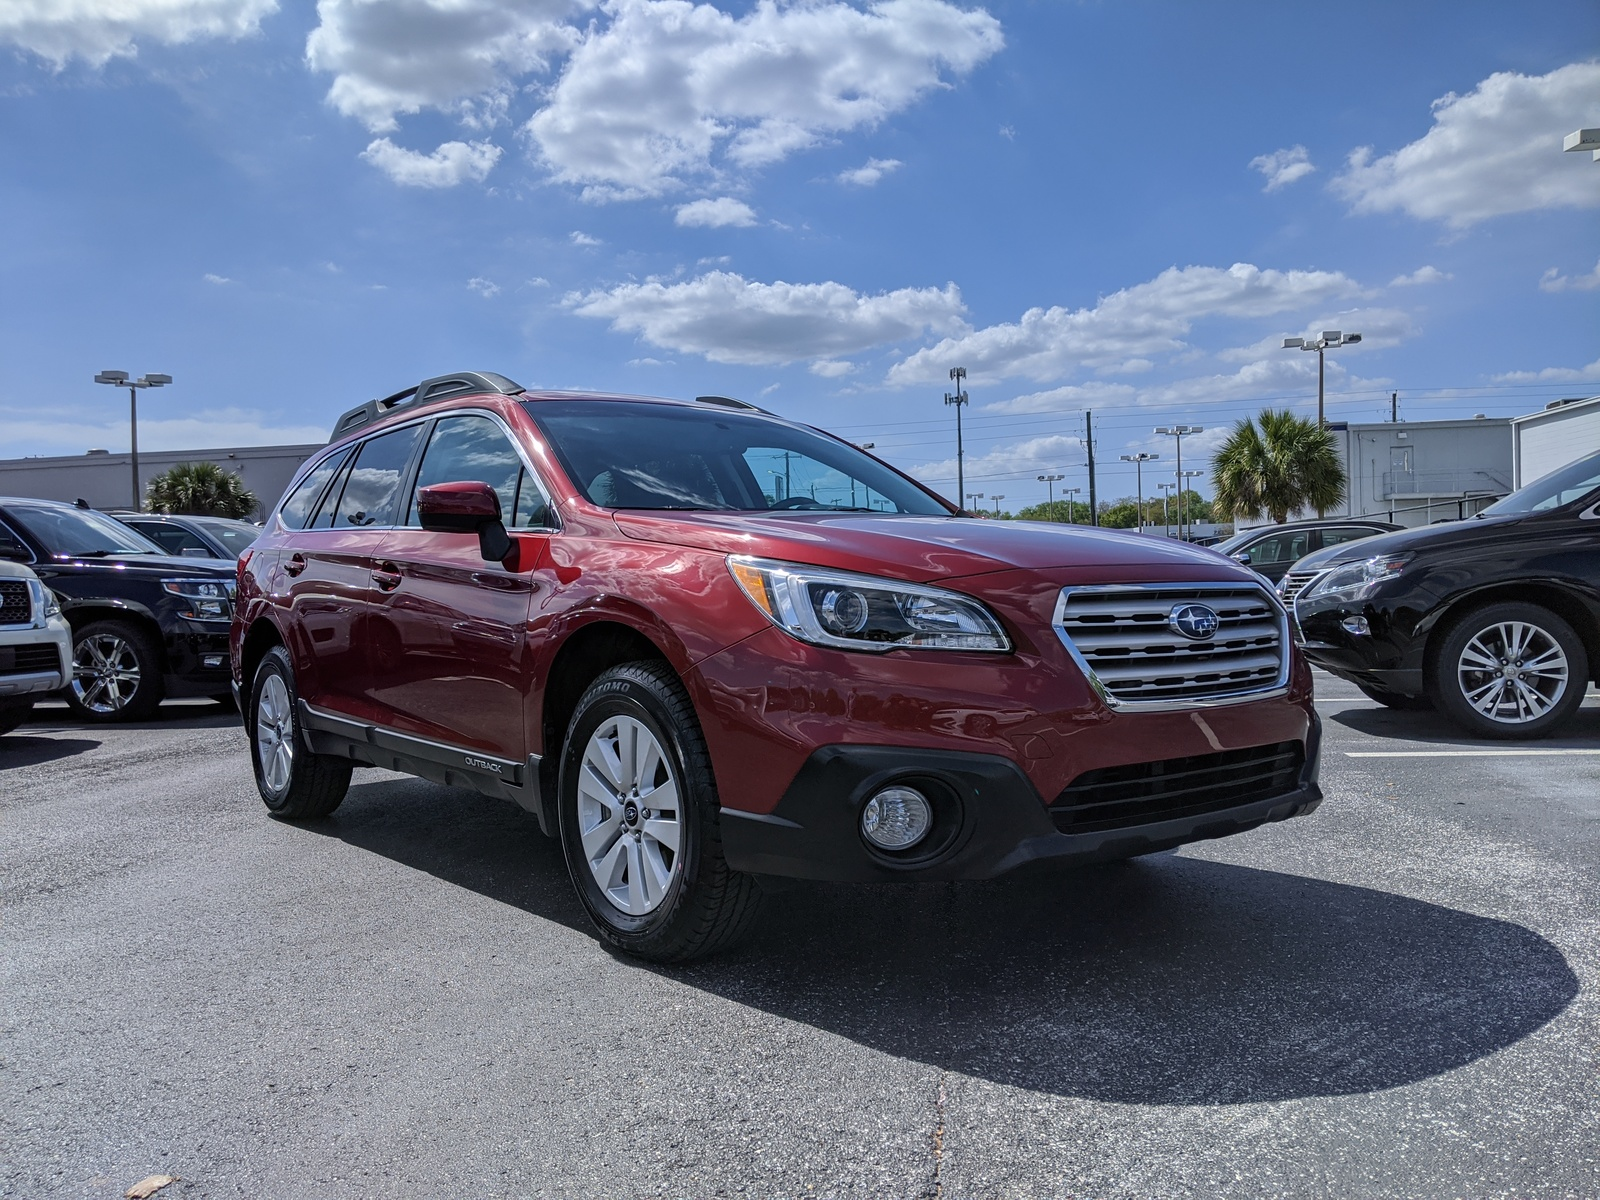 Certified Pre-Owned 2015 Subaru Outback 4dr Wgn 2.5i Premium PZEV